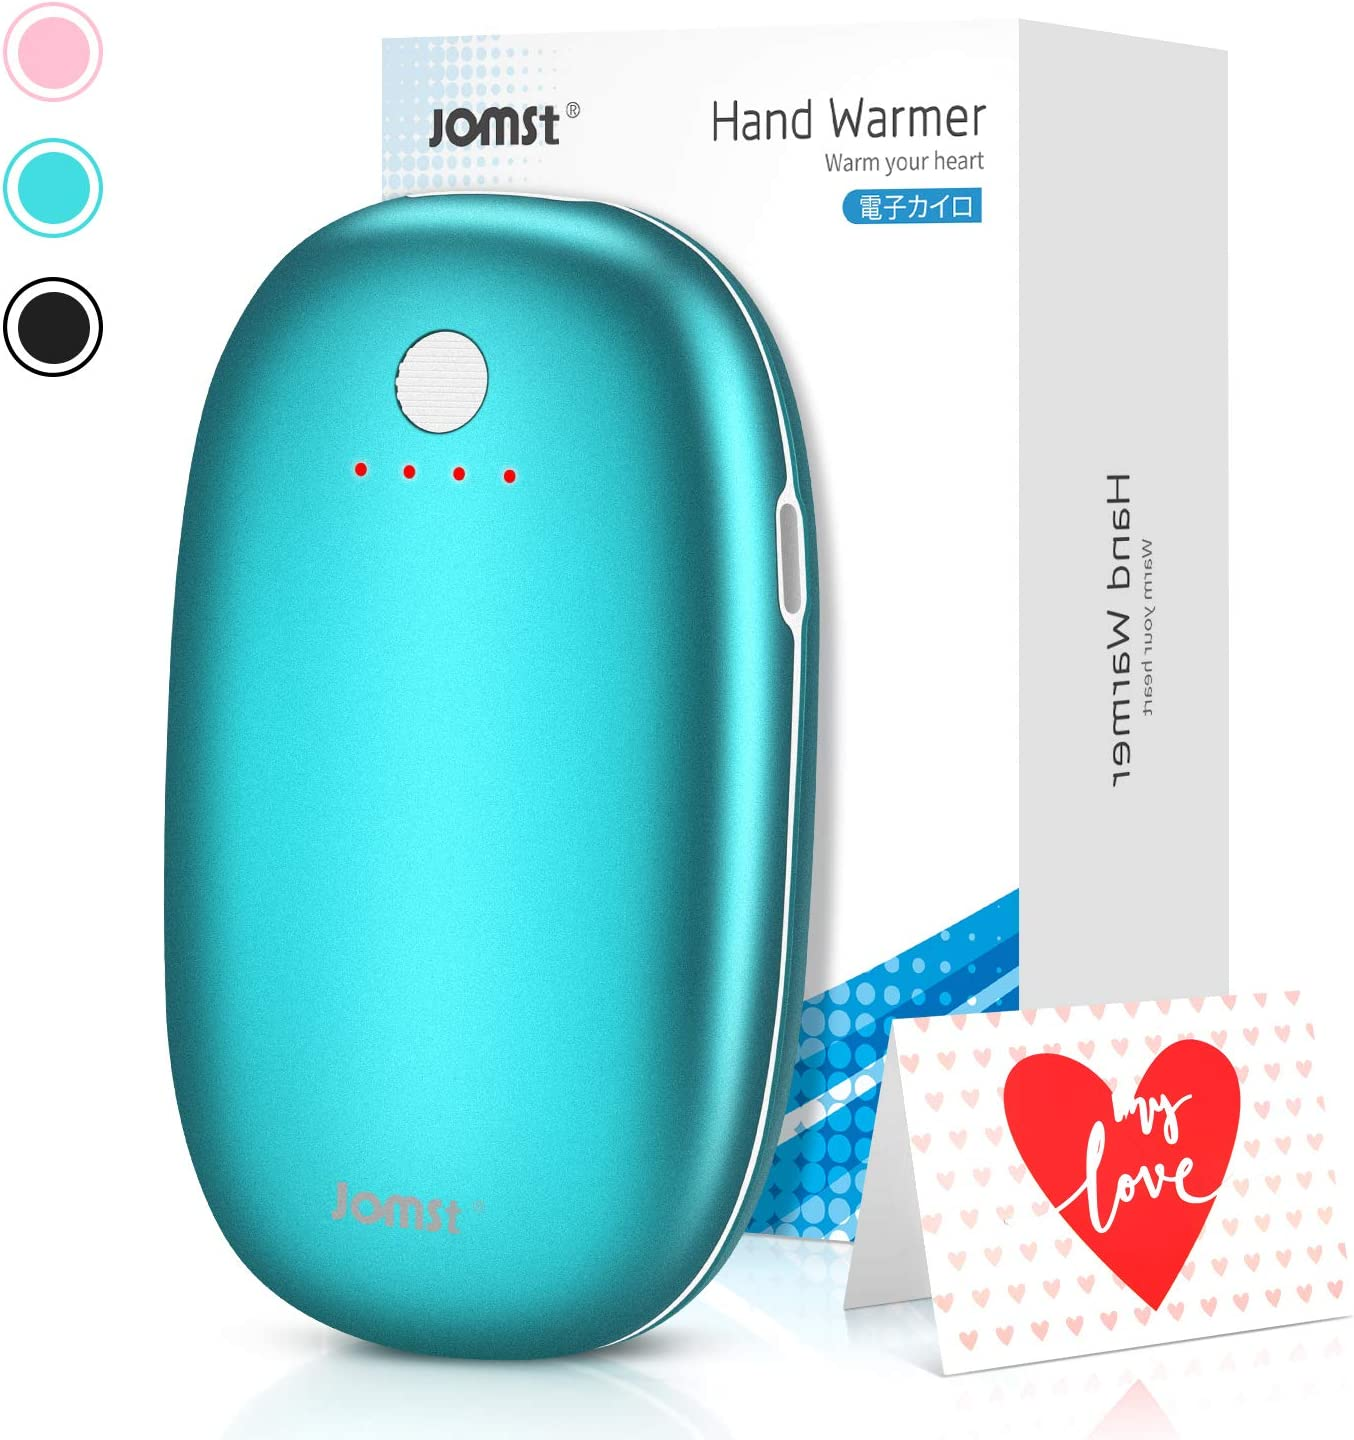 Jomst Rechargeable Hand Warmers 5200mAh Power Bank, Reusable Hand Warmer,Double-Side Quick Heating,Portable Mobile External Battery Charger,Best Winter Gift (Green)